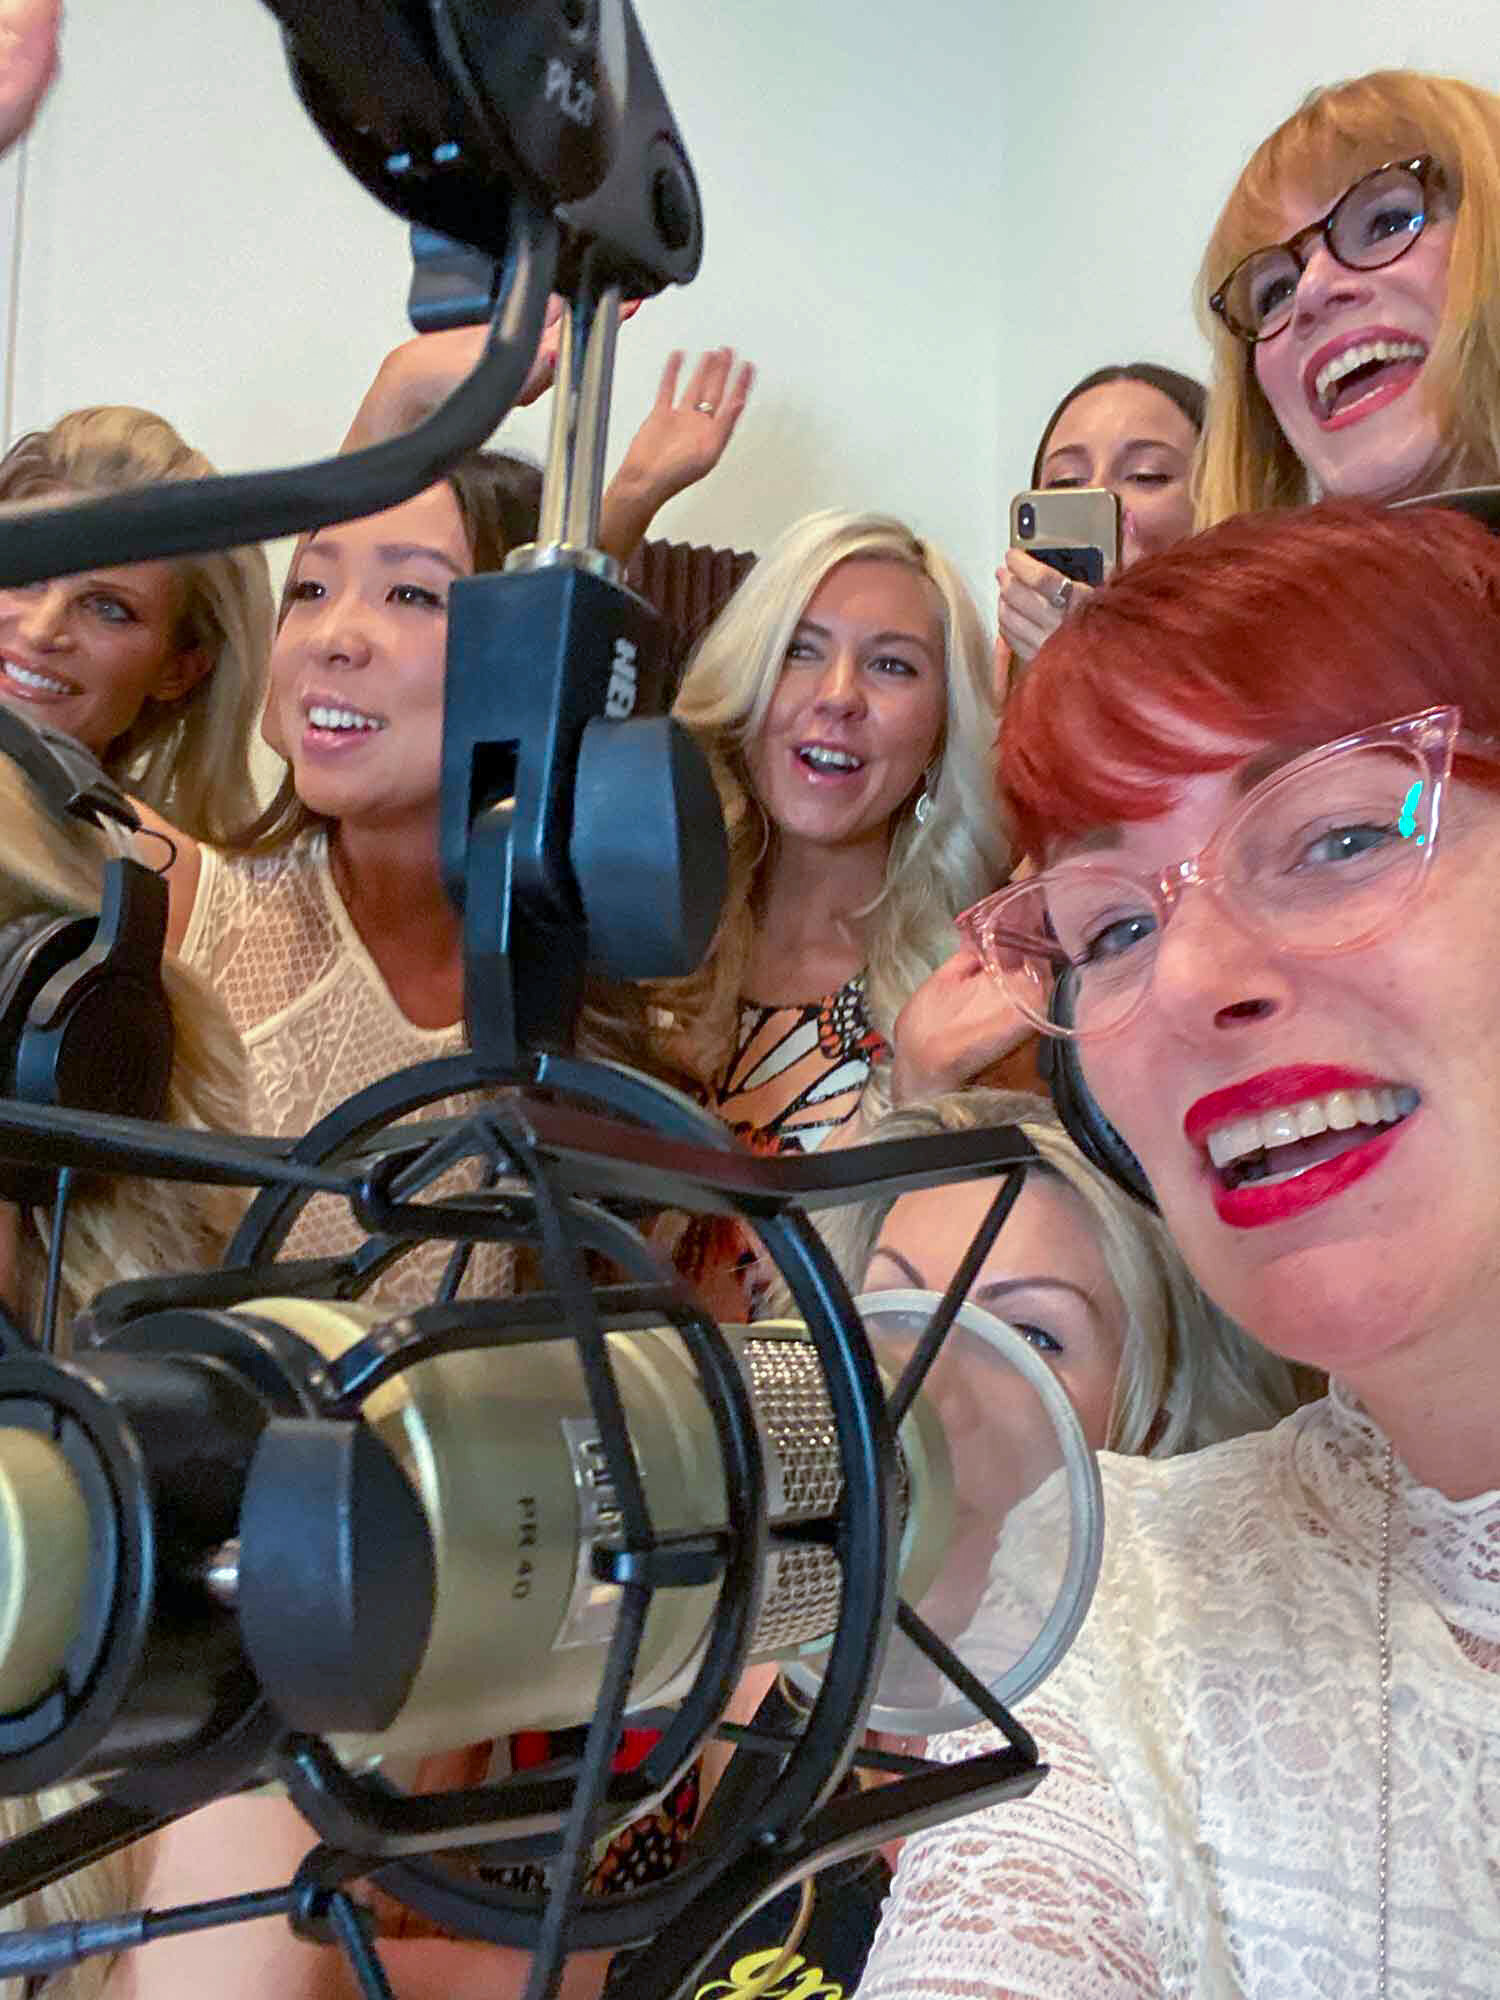 Panel Beauty experts at Glamour & Gains podcast studio